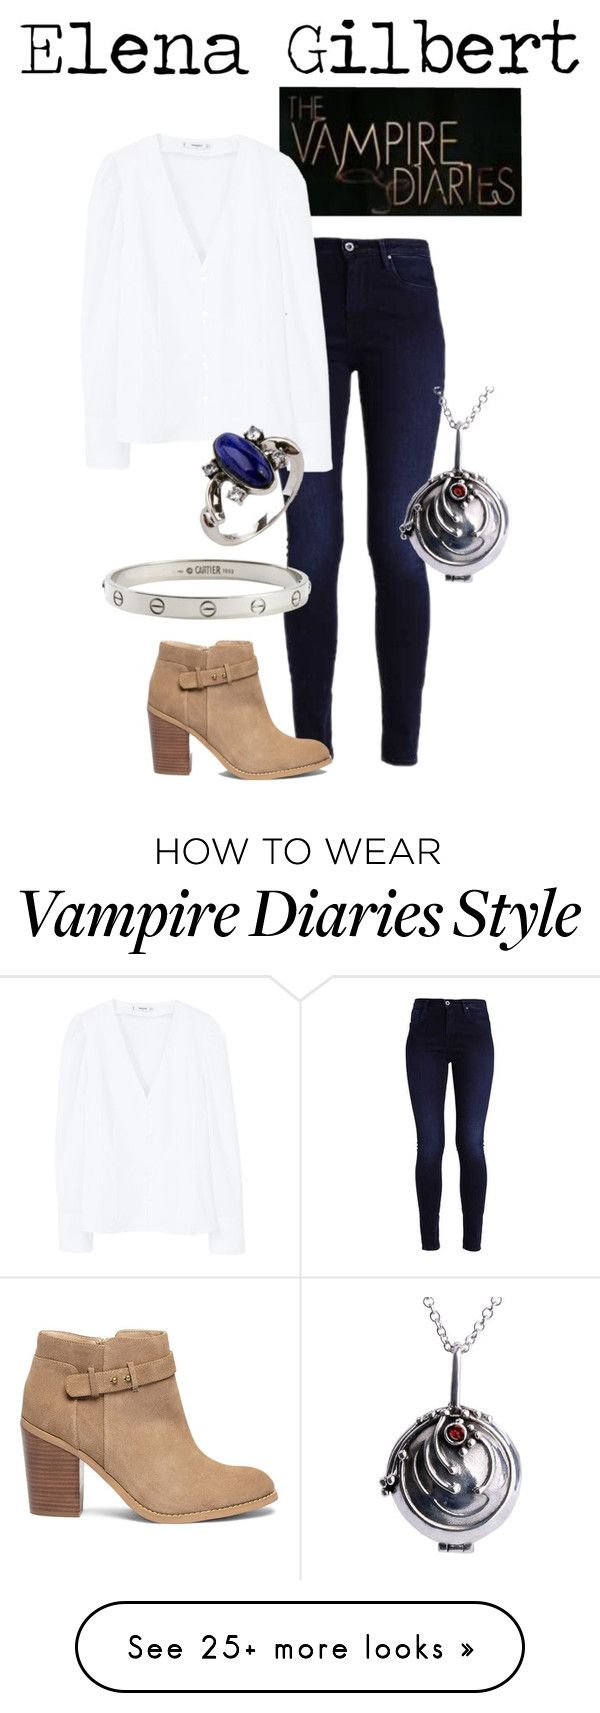 """Elena Gilbert"" by weasleysweaters on Polyvore featuring Sole Society, MANGO and Cartier"